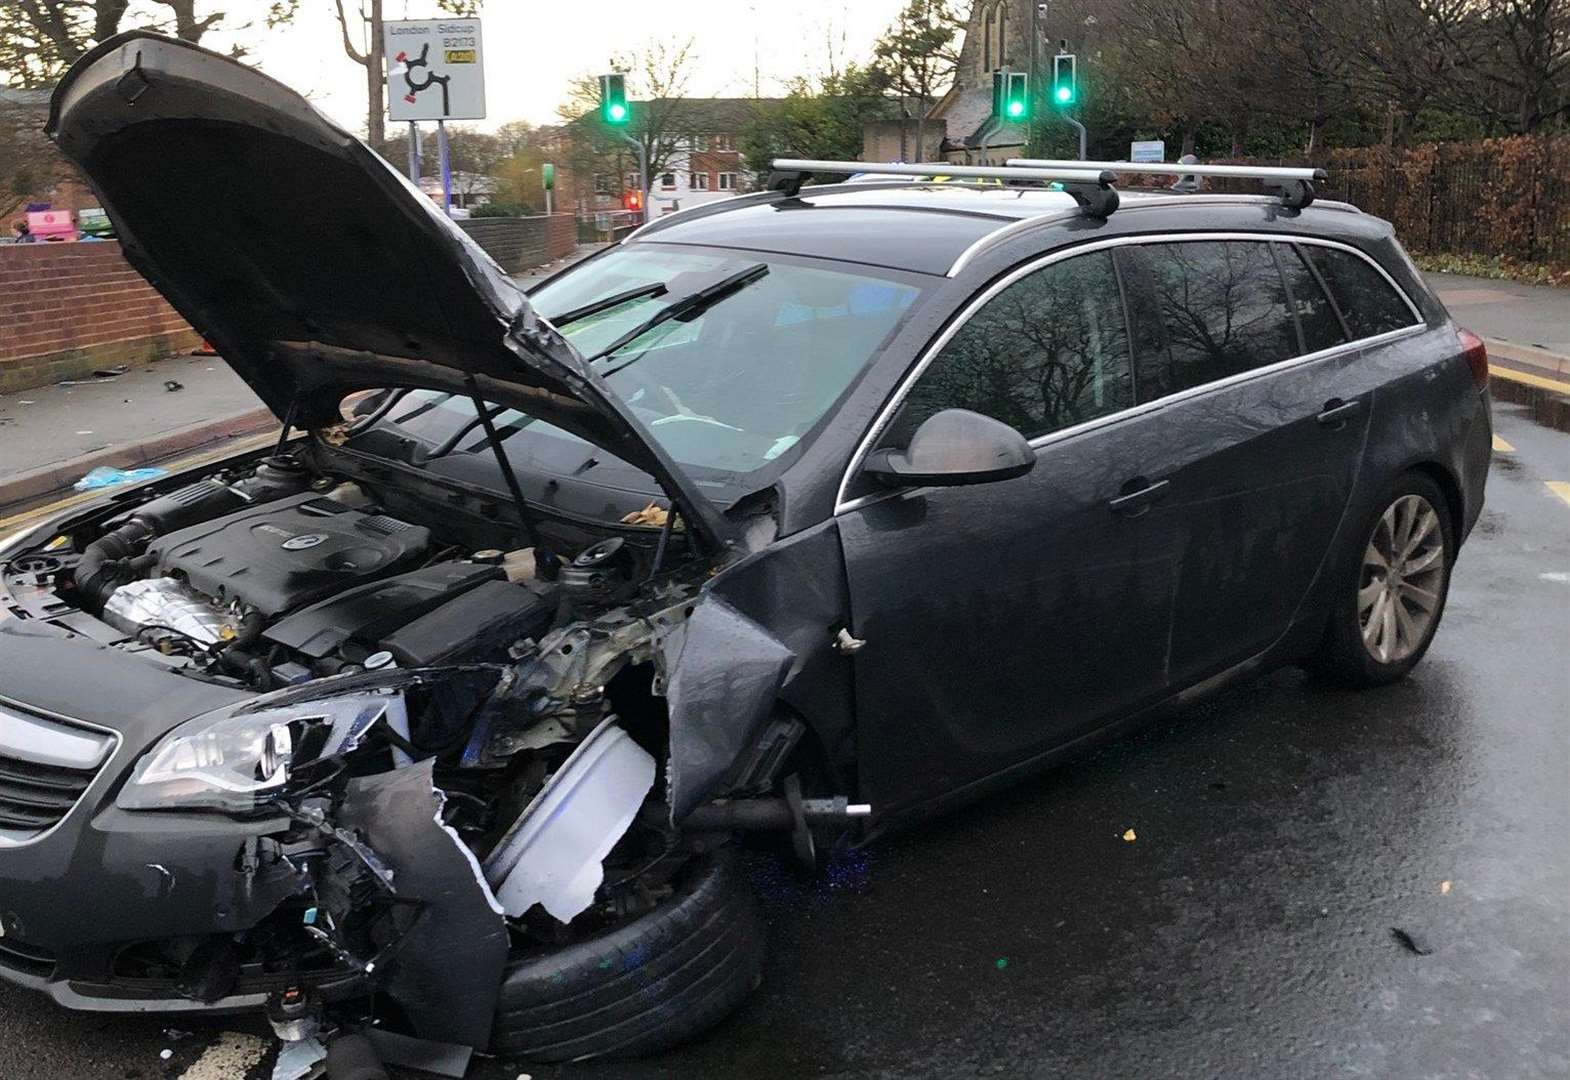 Road reopens after car hits lamppost